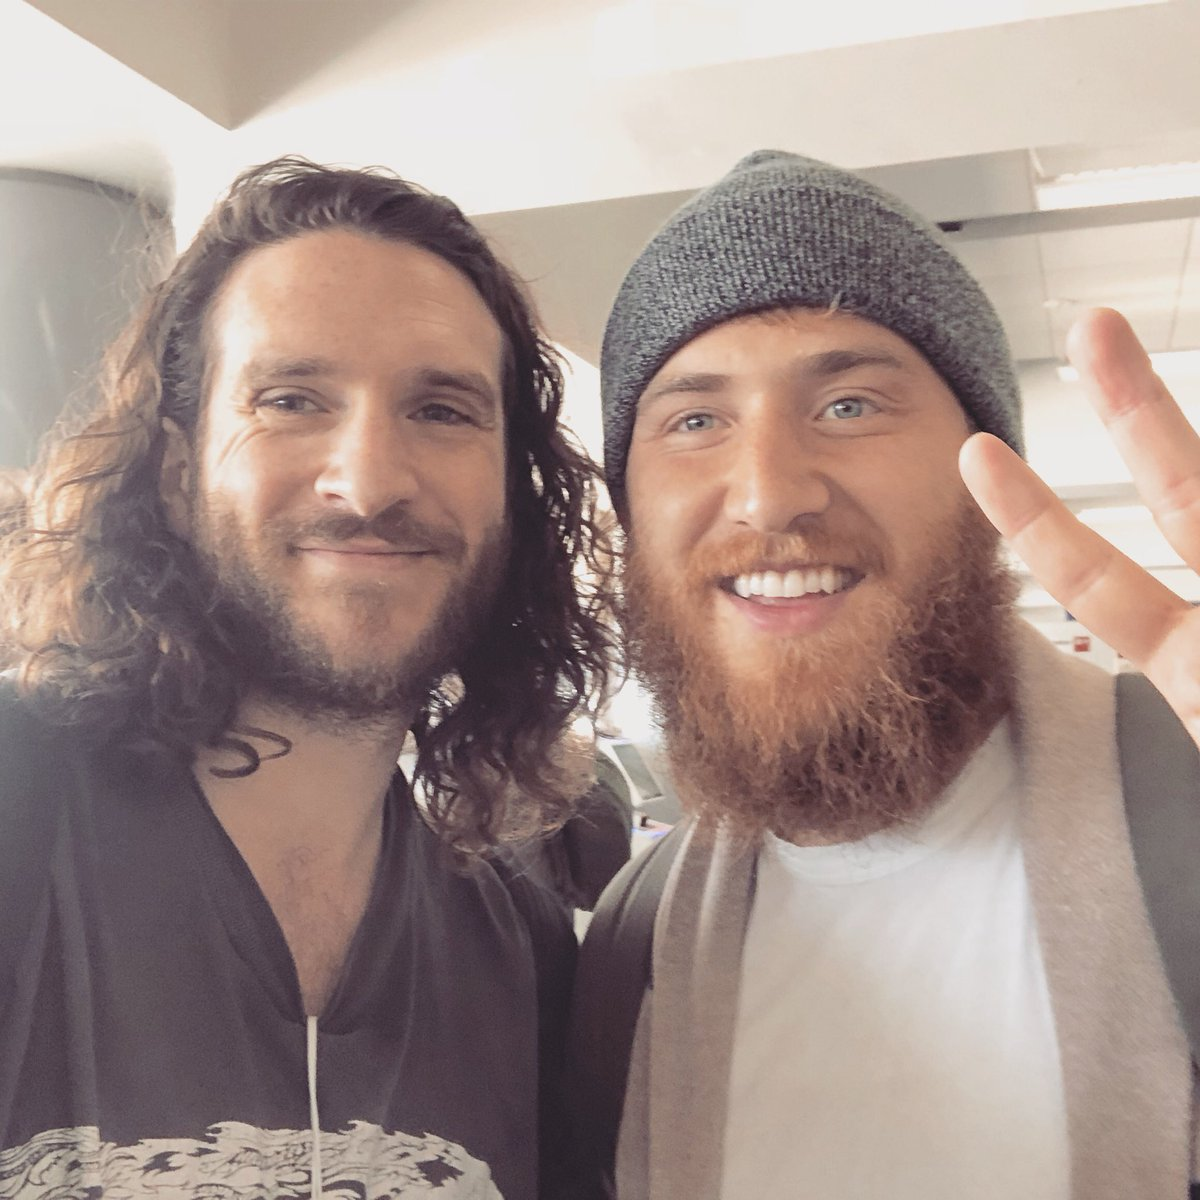 TMZ's Charlie Cotton and Mike Posner at LAX in Los Angeles, CA - April 26, 2018